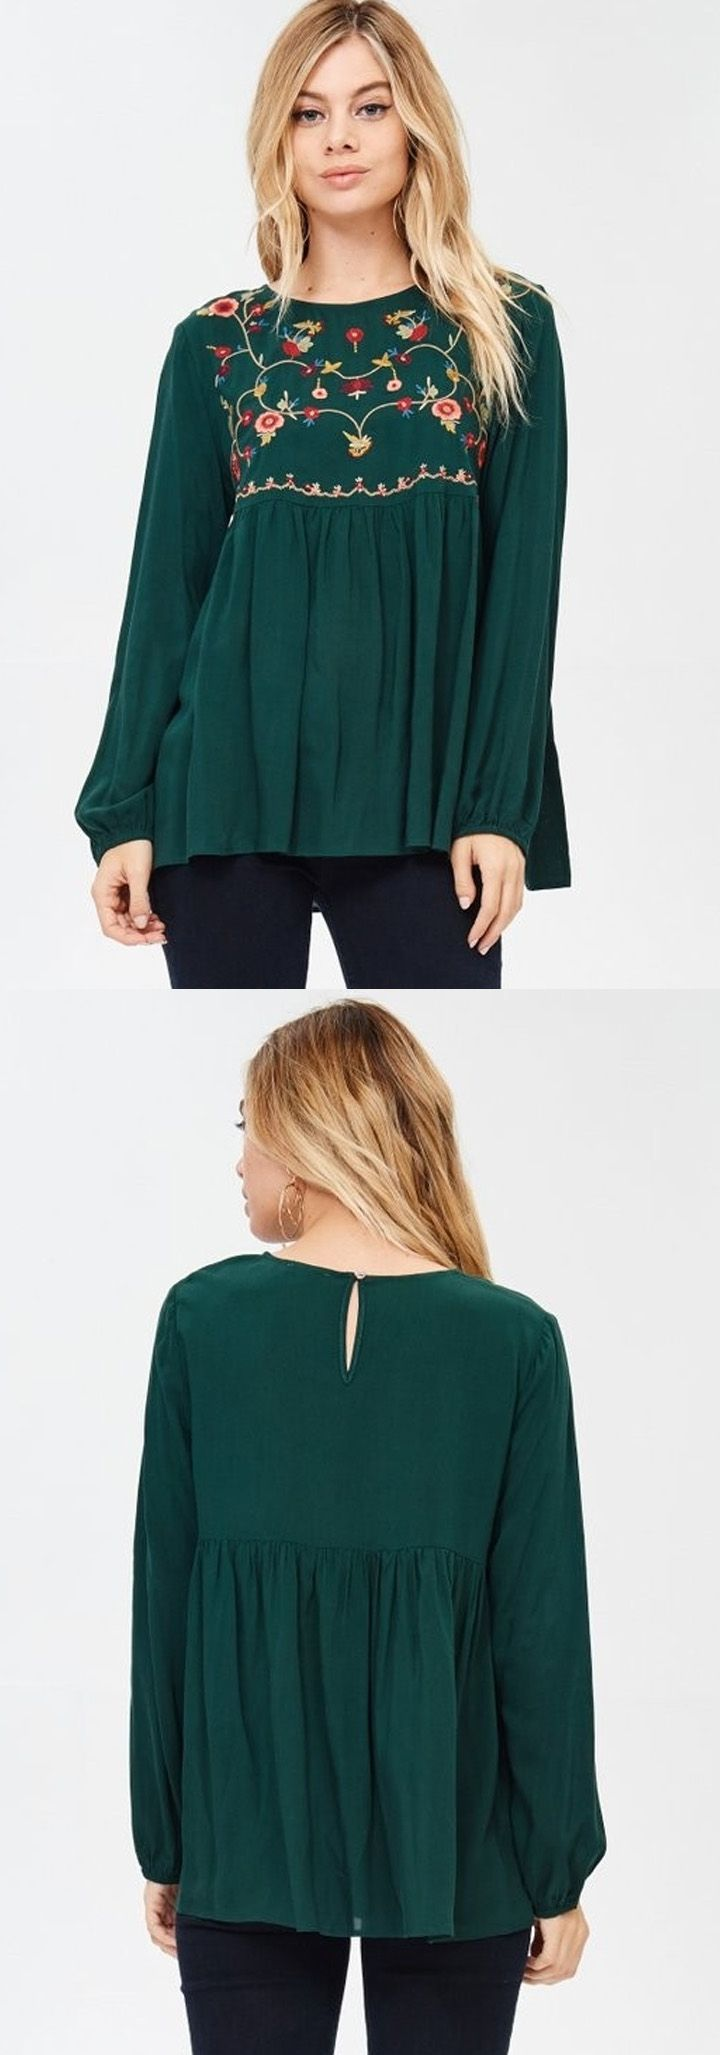 Such a beautiful green shade and loving the embroidery detail on the top of this peplum blouse!  #embroideredshirt #peplumtop #peplum #womensfashion #womenswear #fallfashion #brickyardbuffalo